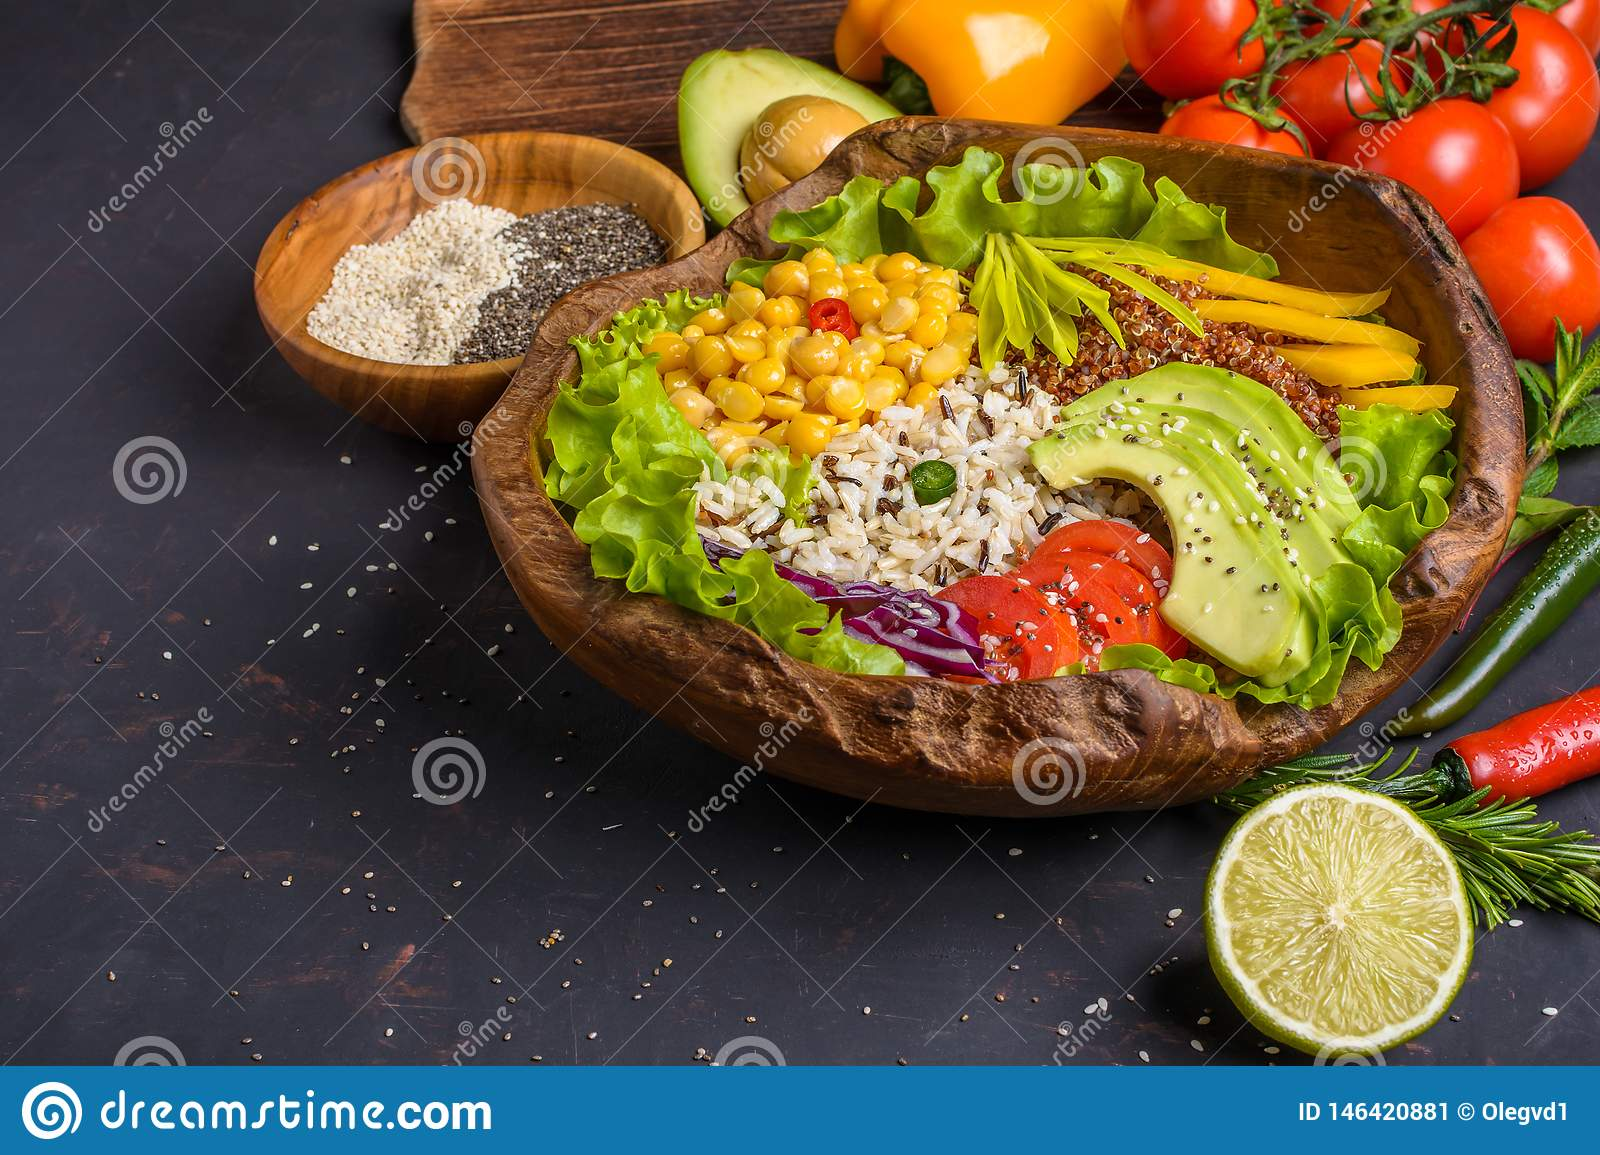 Buddha bowl with chickpea, avocado, wild rice, quinoa seeds, bell pepper, tomatoes, greens, cabbage, lettuce on dark stone table